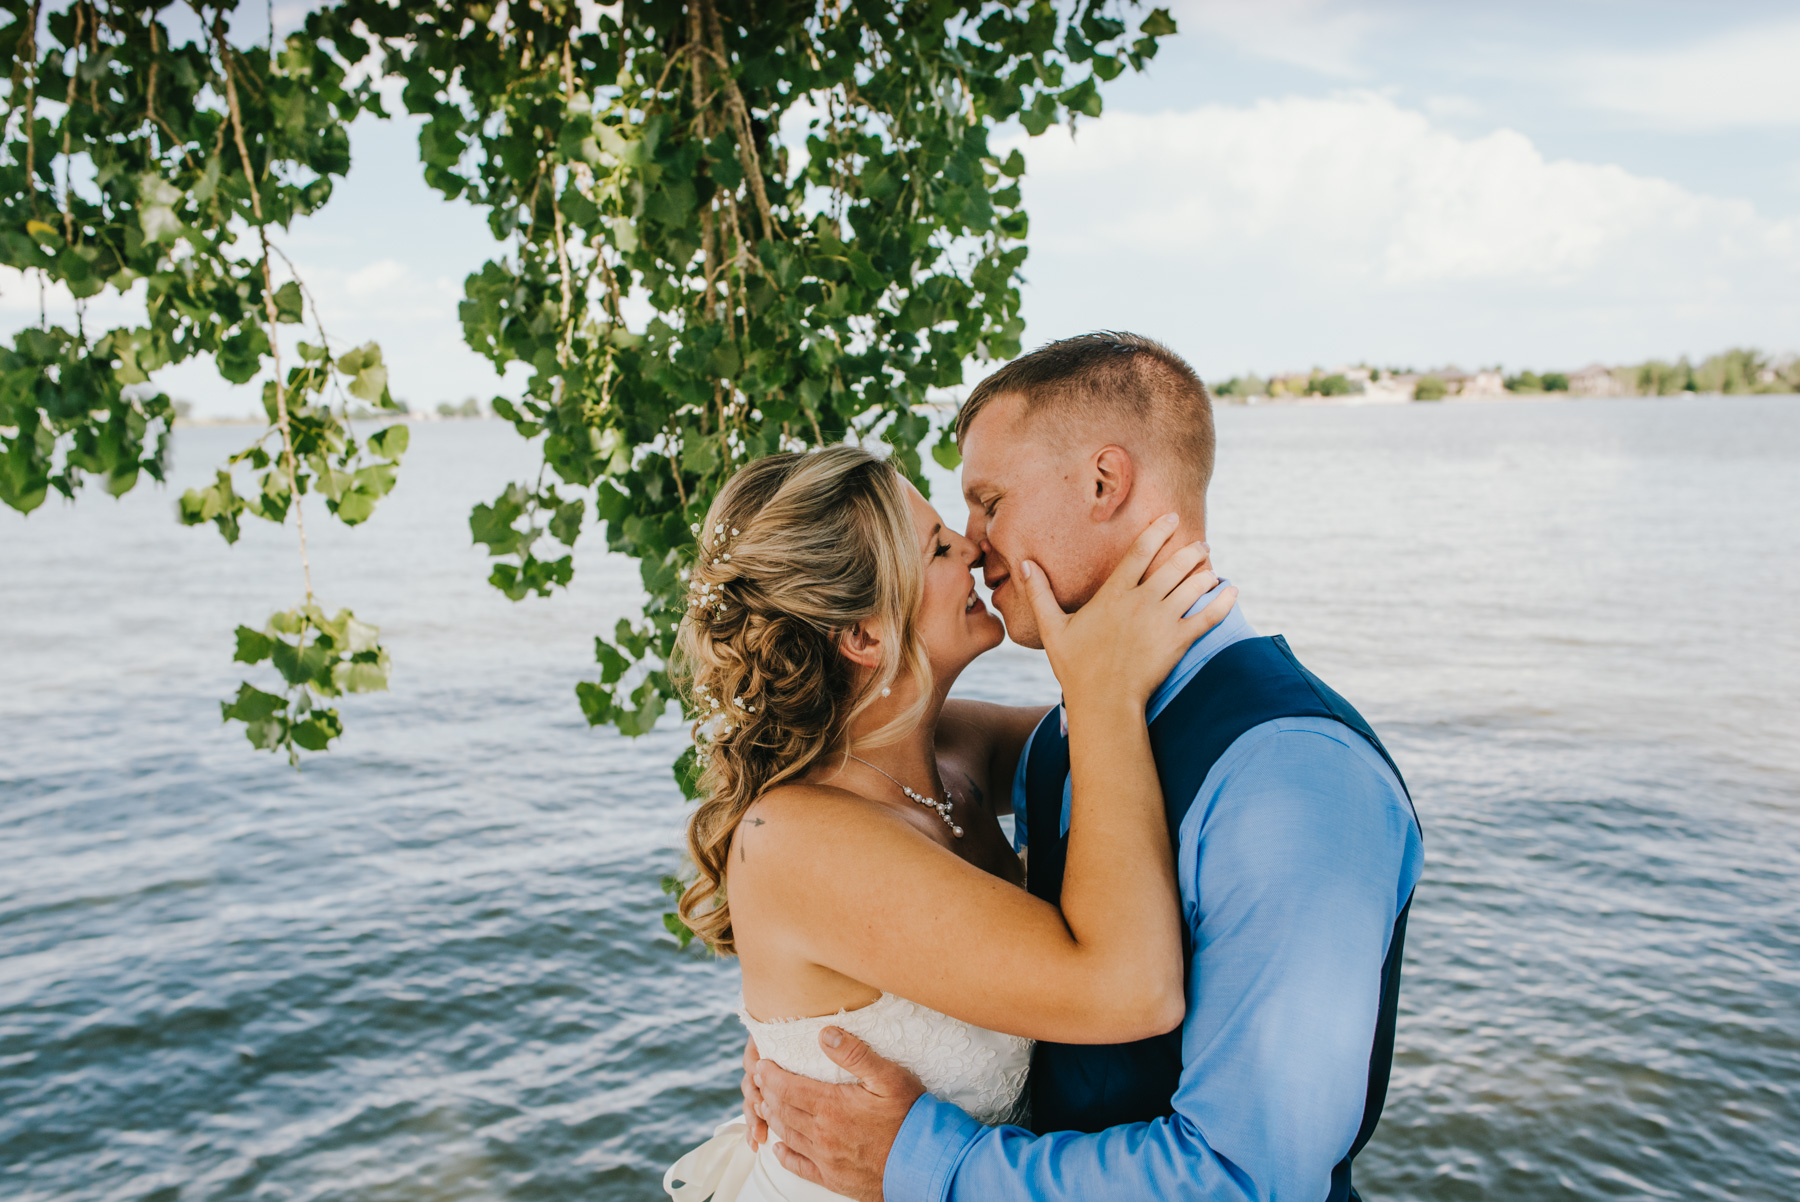 Jessi and Dan got married at her parents Boyd Lake lakehouse over the summer. They property, which is right outside of Fort Collins, made for a gorgeous lakefront destination wedding. I love the way the green trees are hanging low just behind Jessi and Dan. This is a moment I captured shortly after their first look on the lake. Copyright: Teresa Woodhull Photography